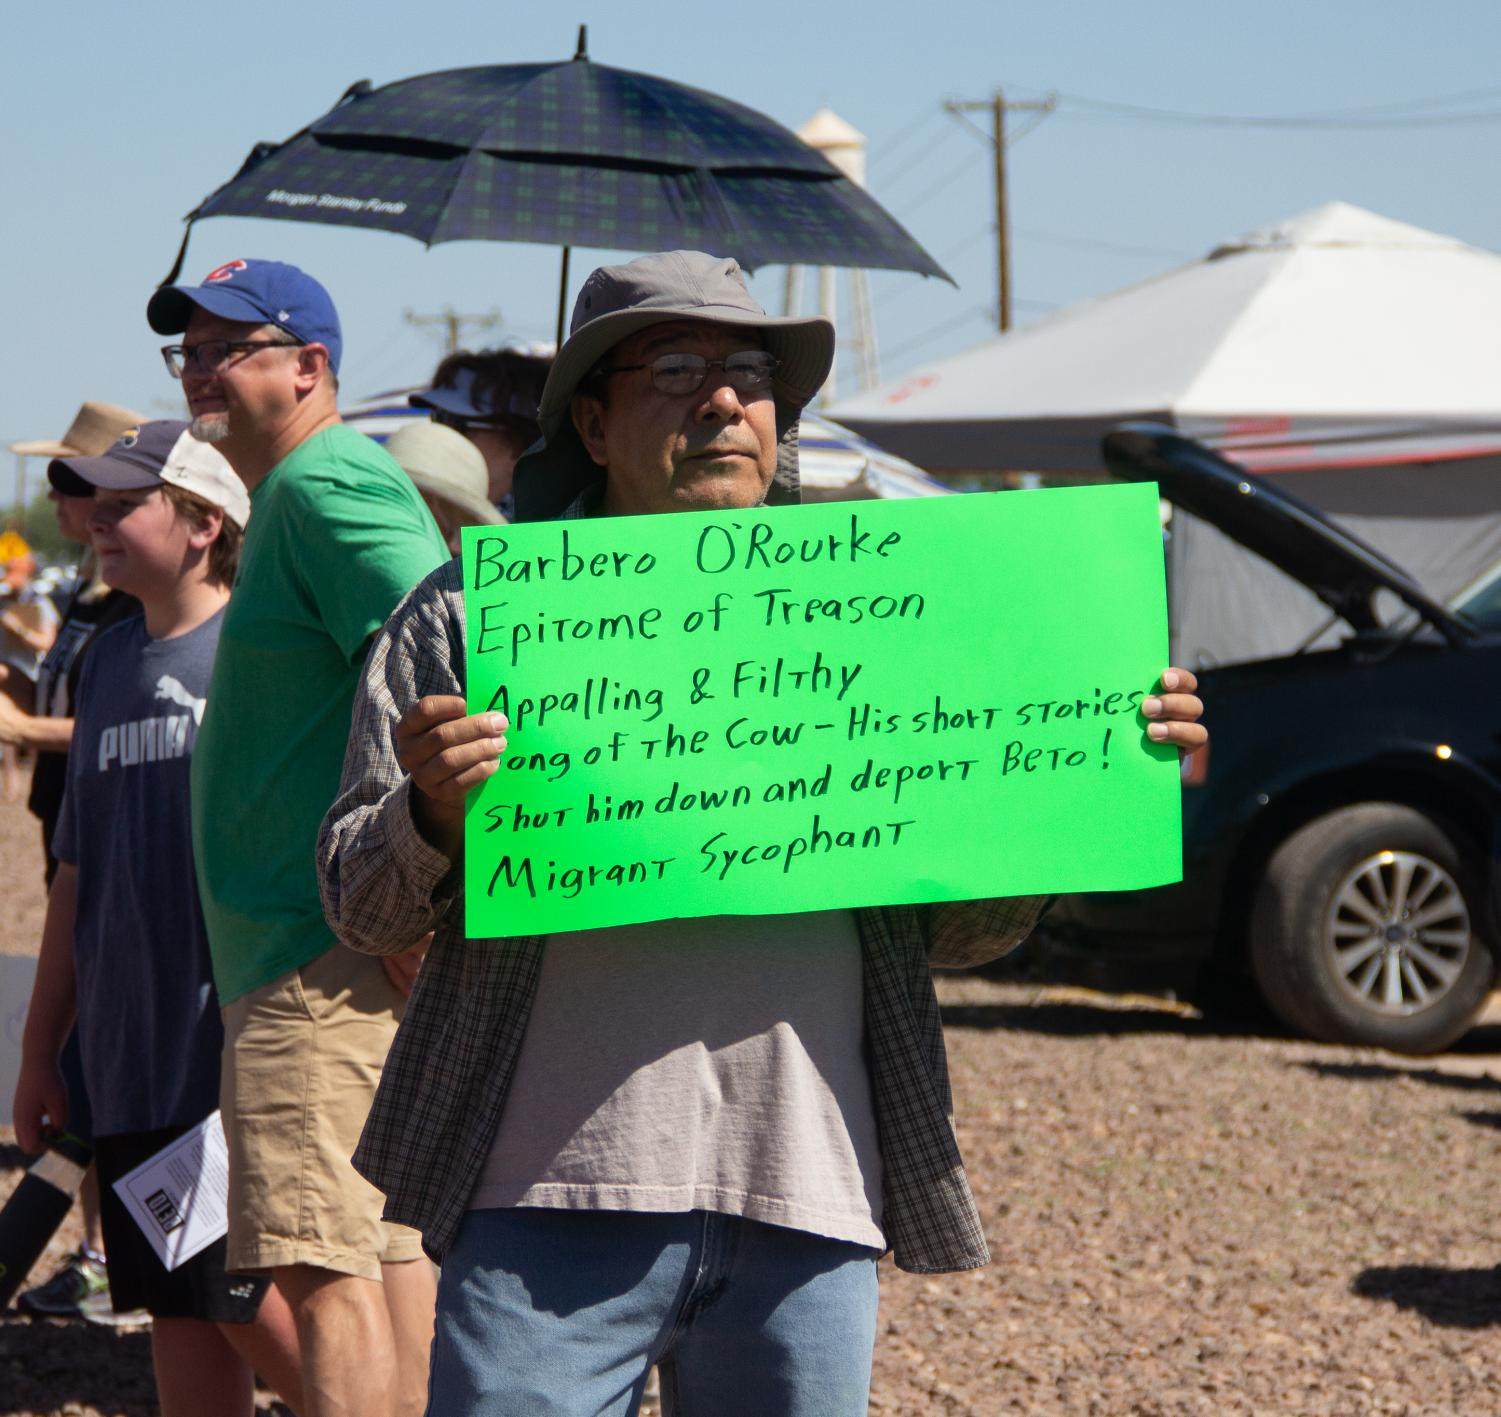 A+man+holds+a+sign+listing+controversial+short+stories+and+poems+by+Democratic+presidential+candidate+Beto+O%27Rourke+at+the+Clint+Border+Patrol+Station+rally+held+by+O%27Rourke+on+Sunday+June+30%2C+2019.